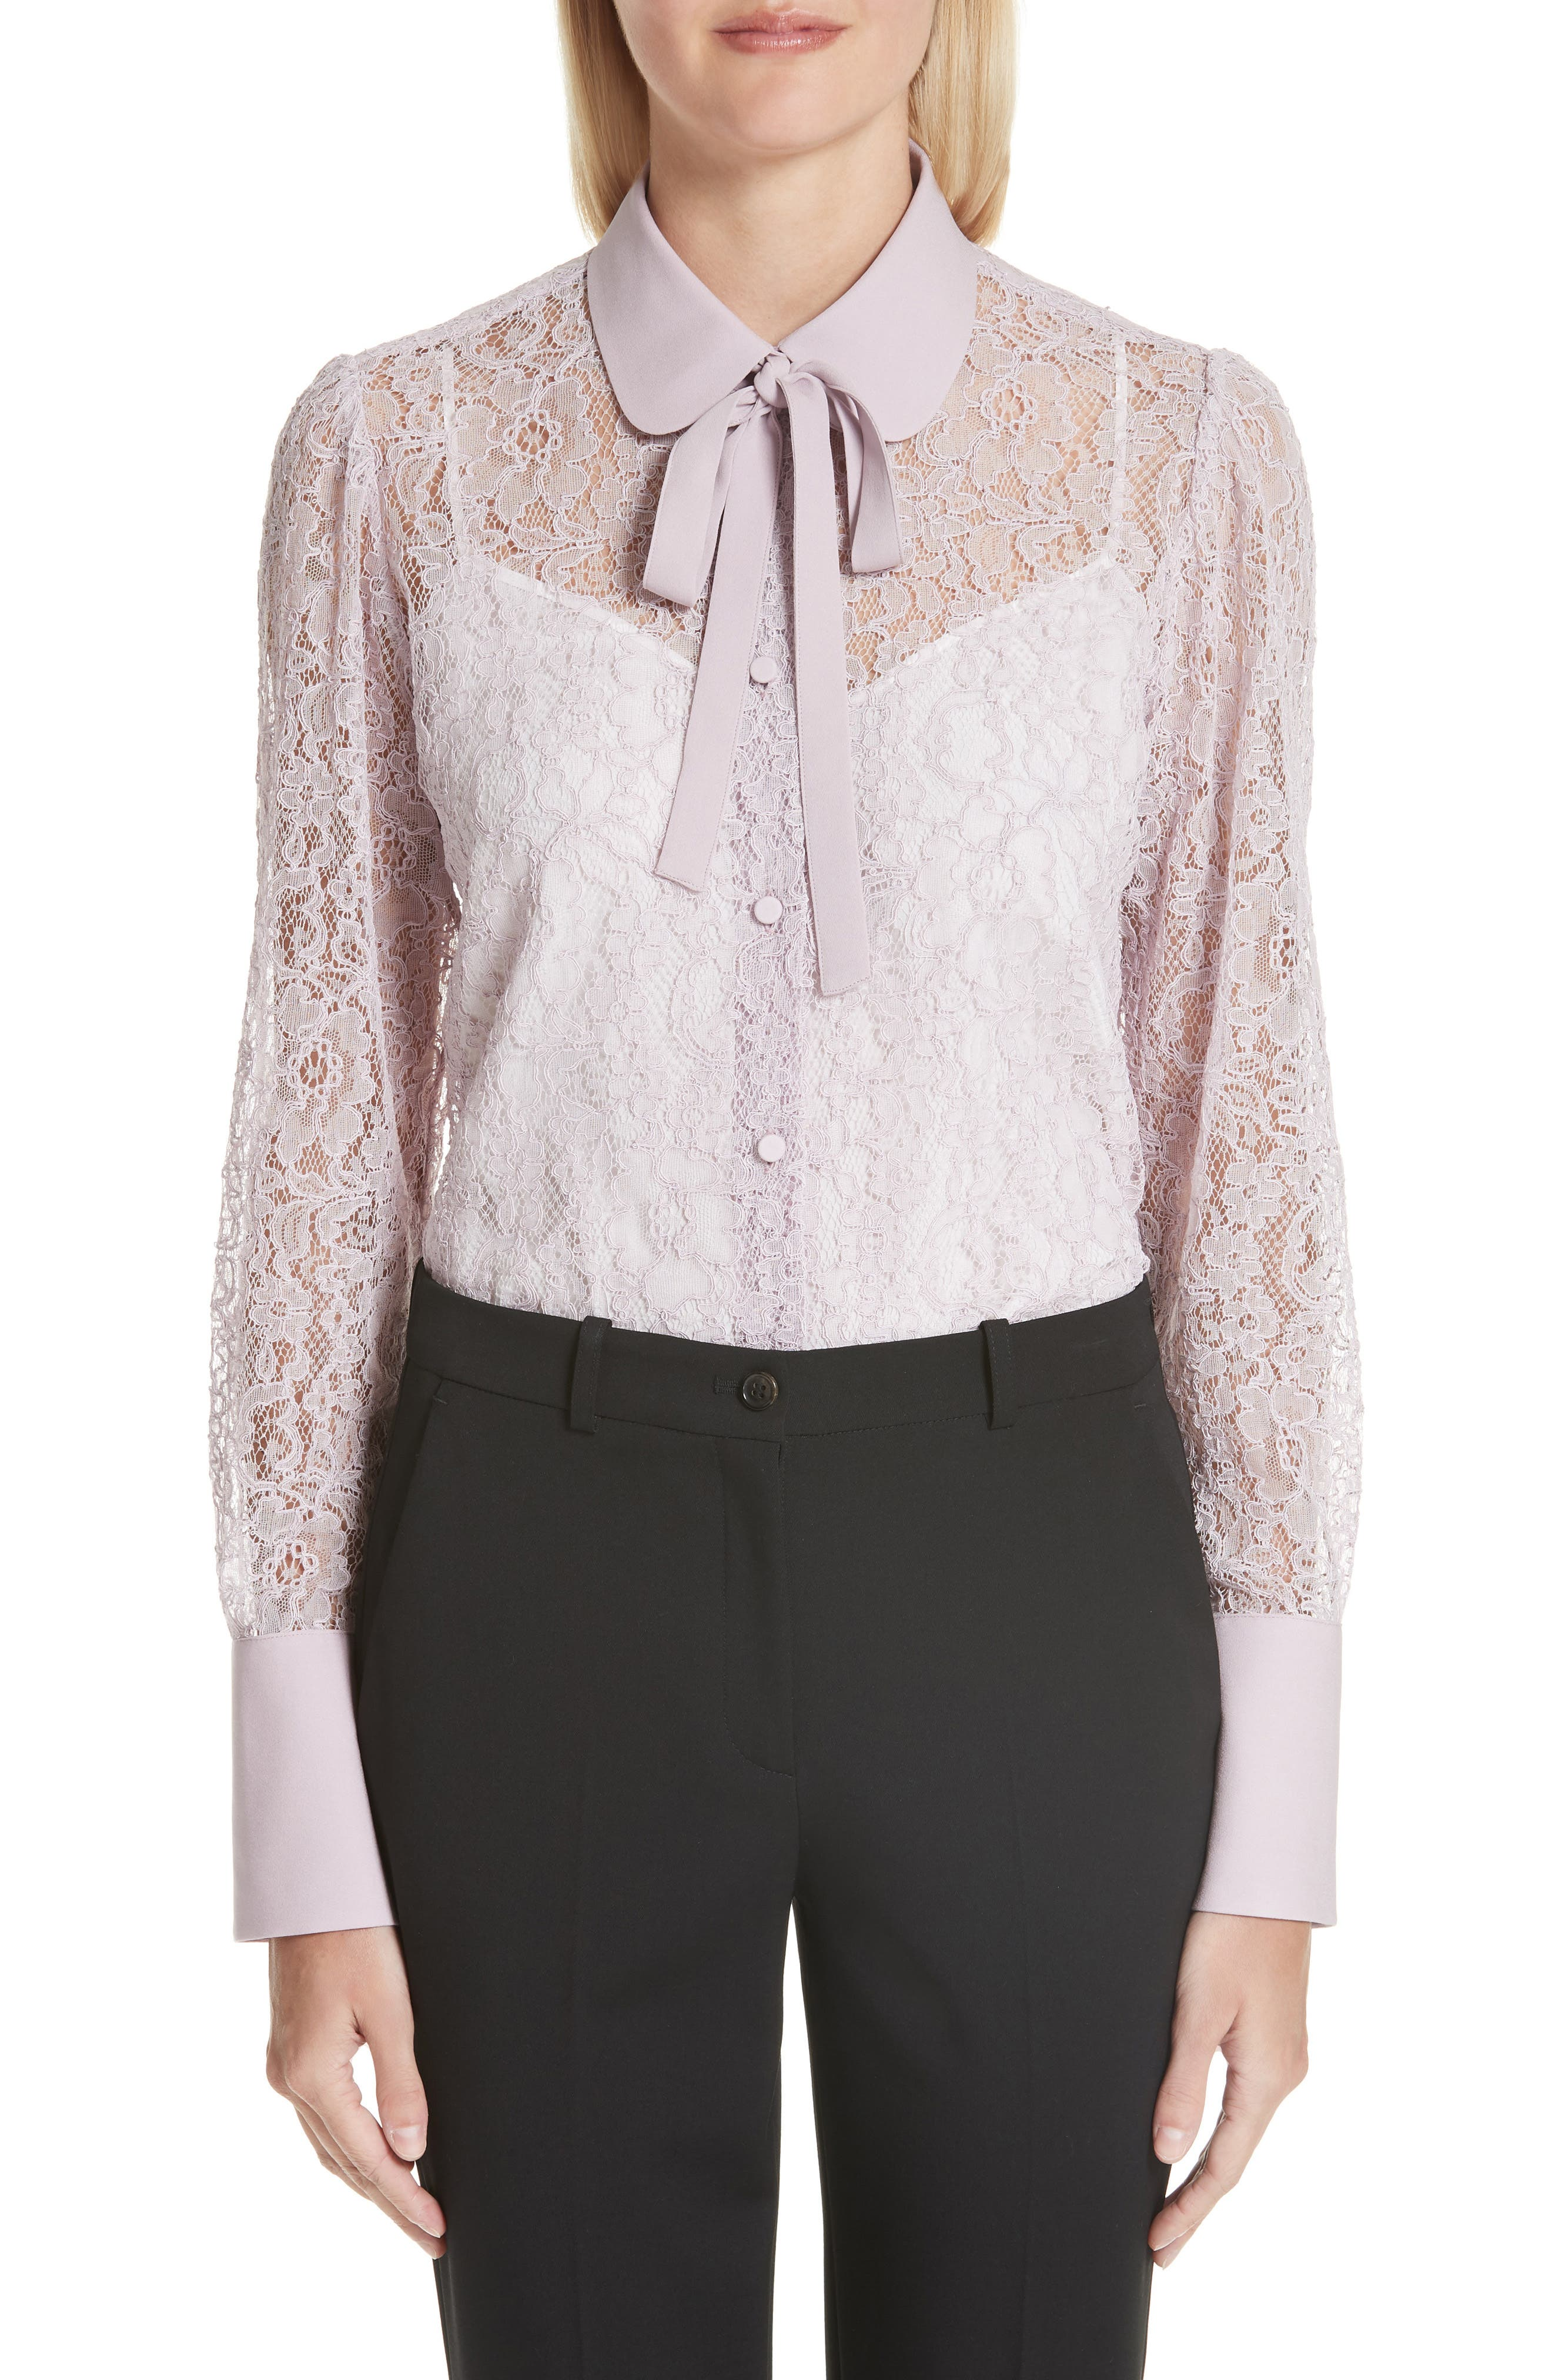 VALENTINO Tie Neck Chantilly Lace Shirt, Main, color, 650